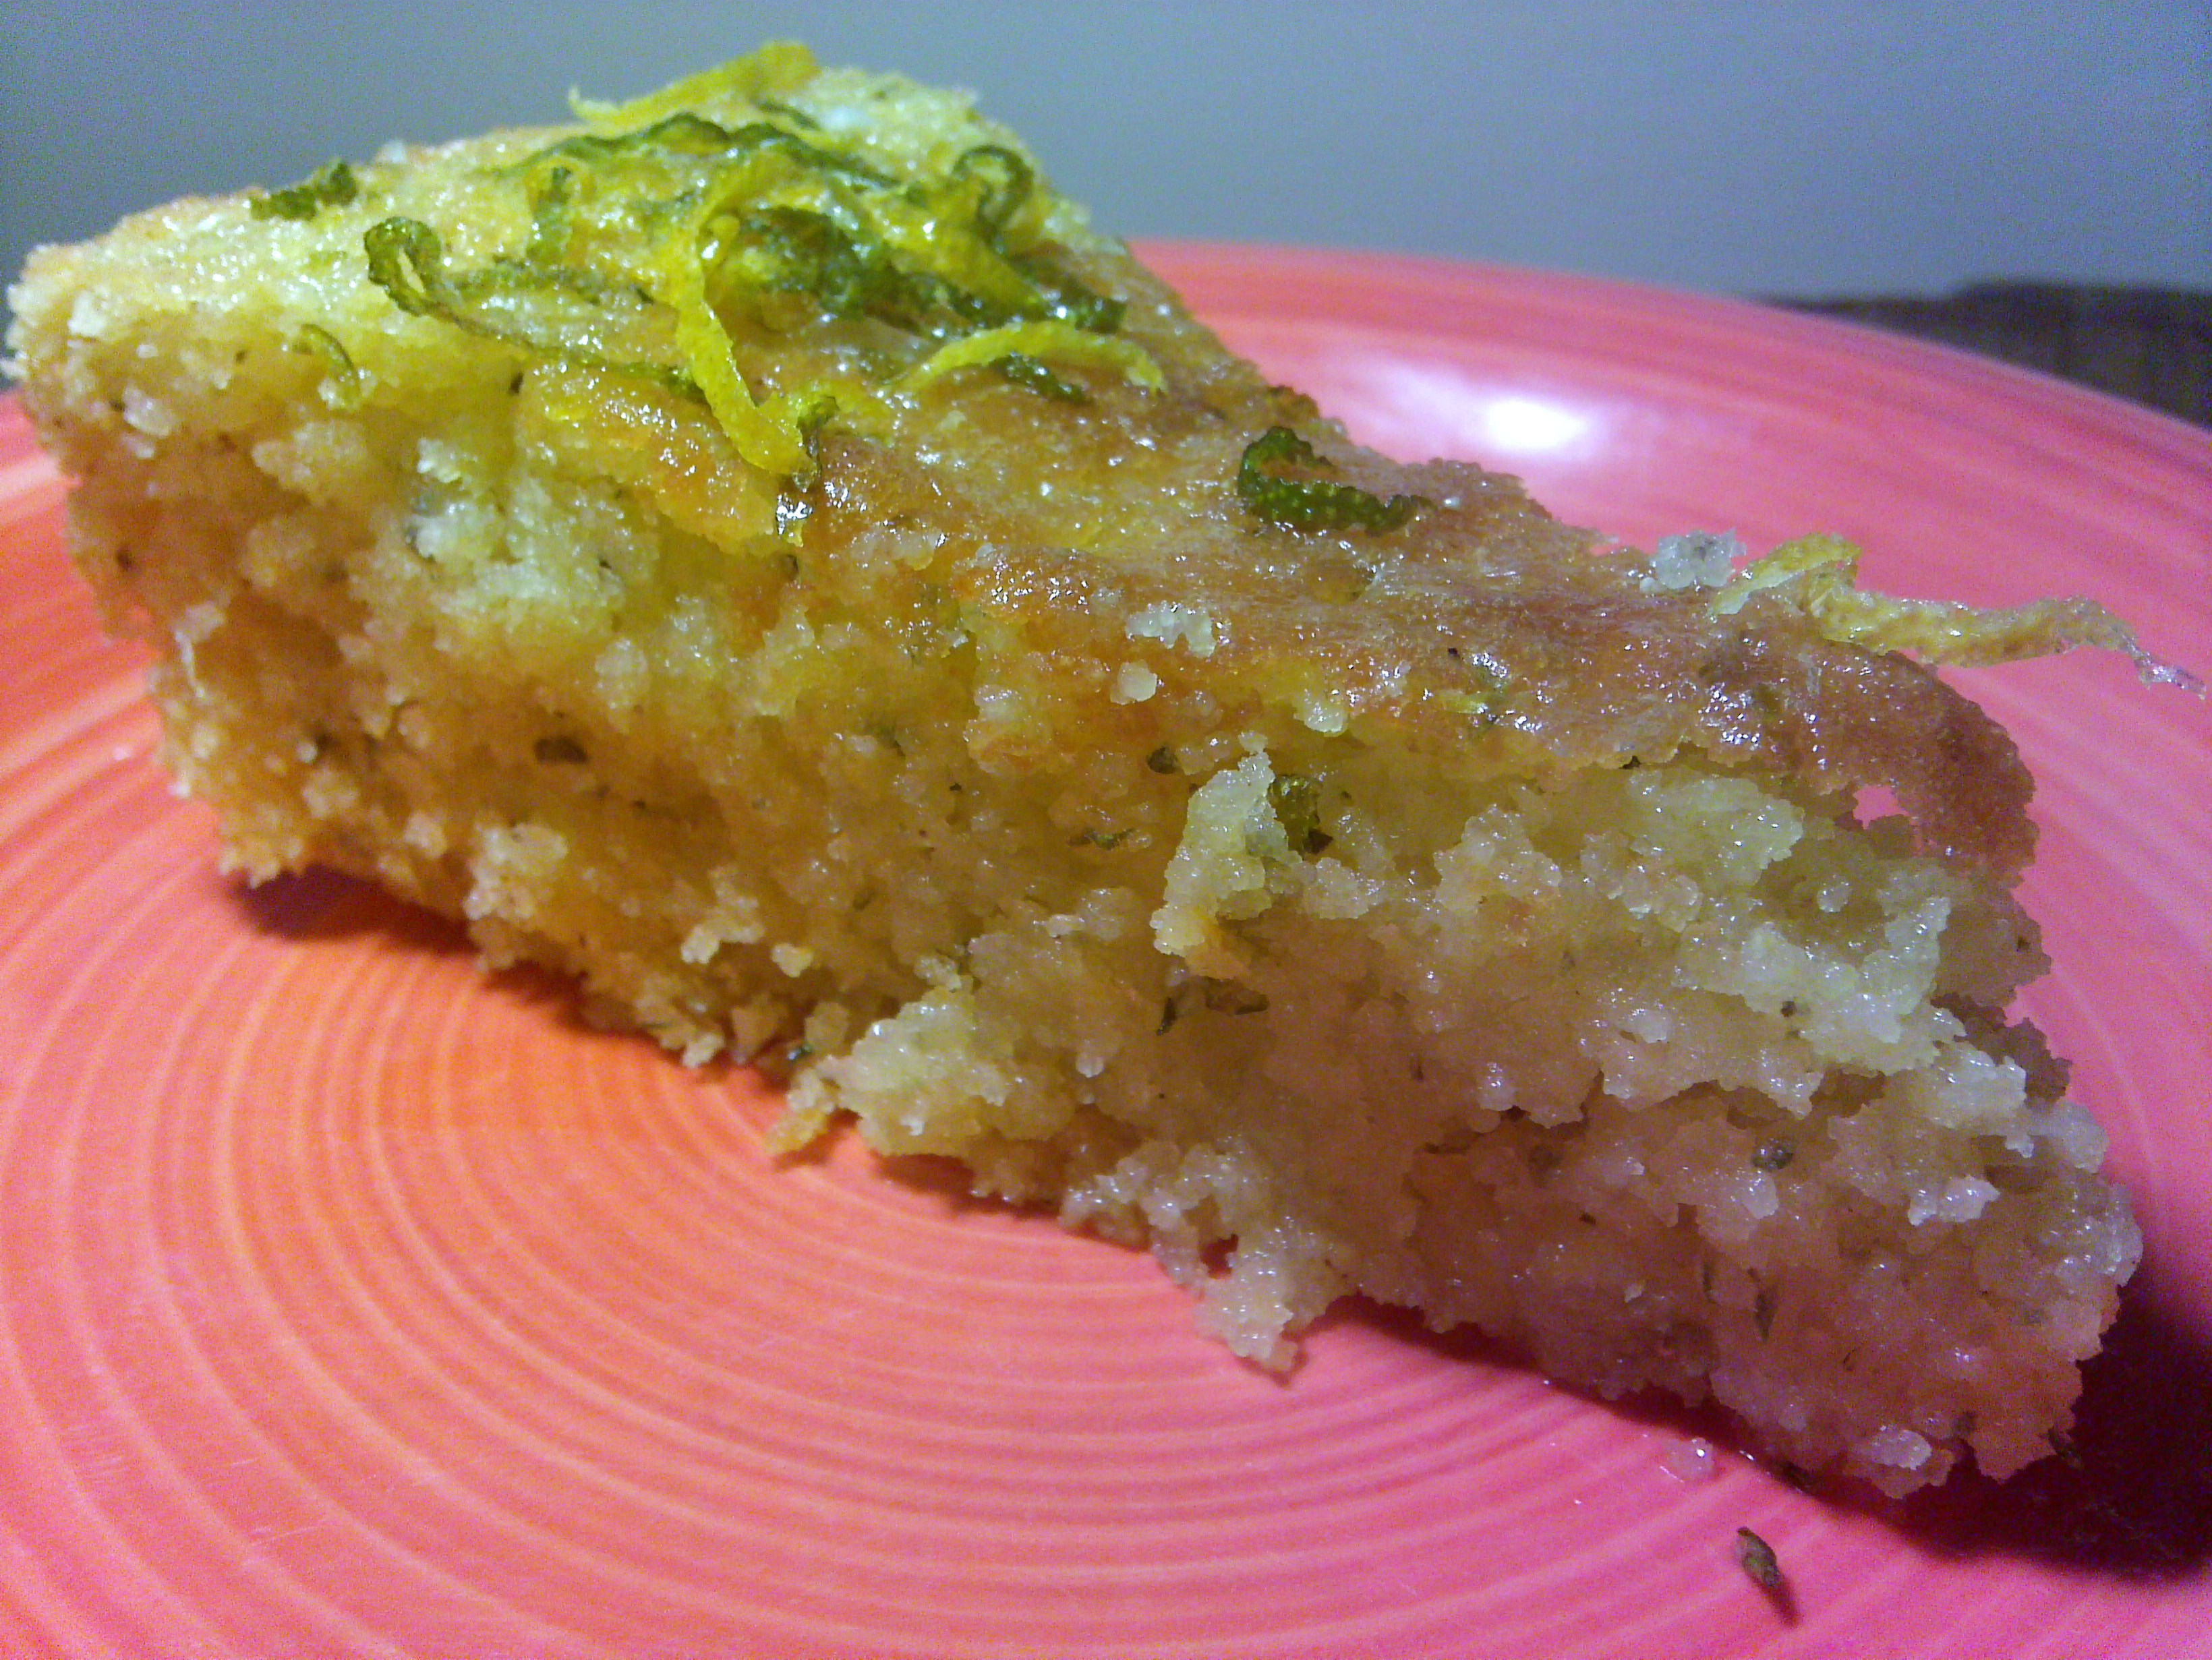 Lemon and Rosemary Cake with Citrus Glaze